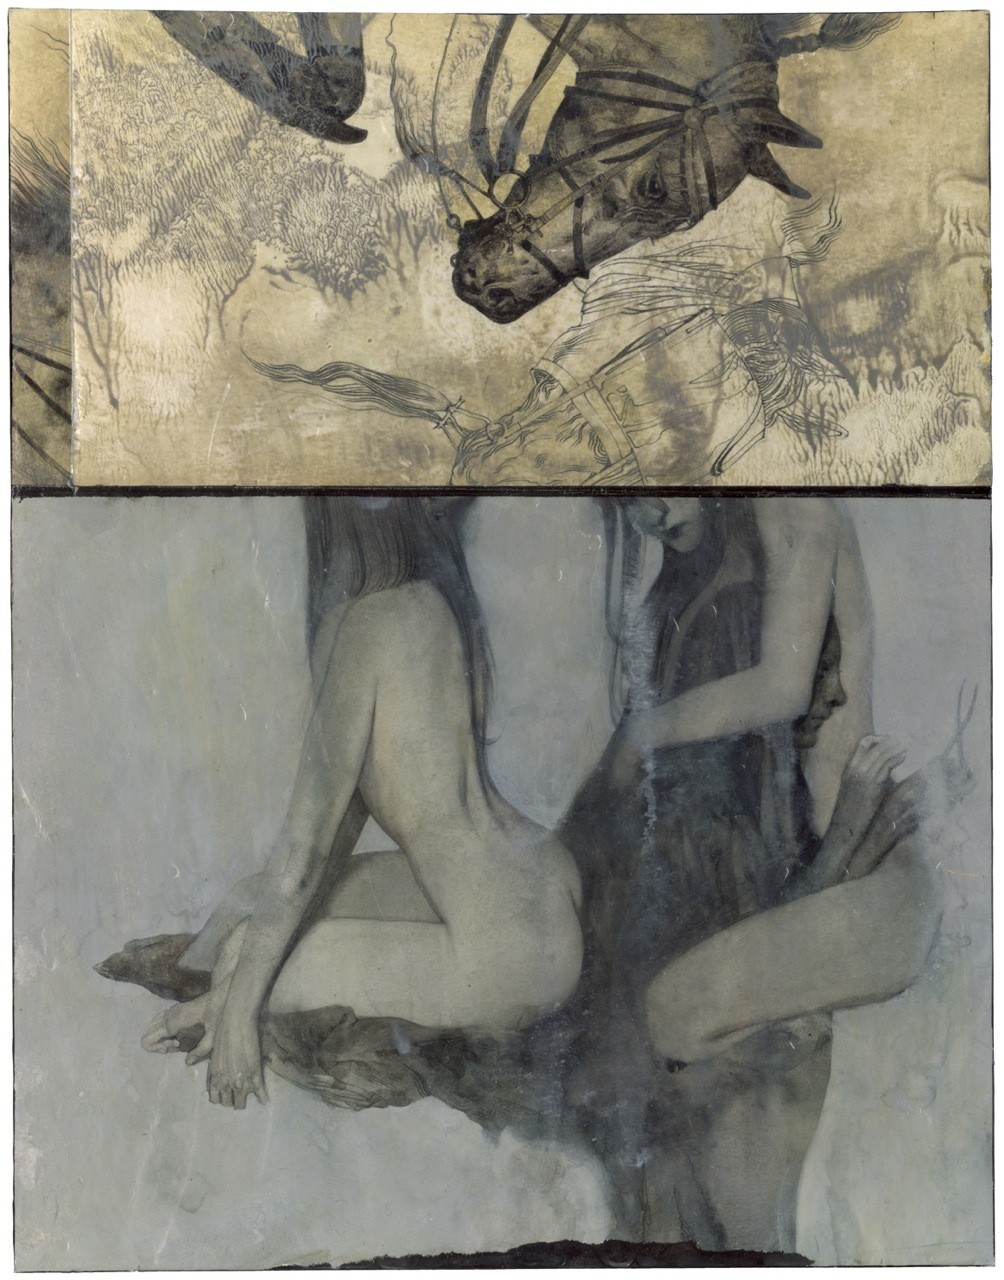 Joao Ruas: Interviewed by Zach Tutor: Oana_and_Horse_Study.jpg